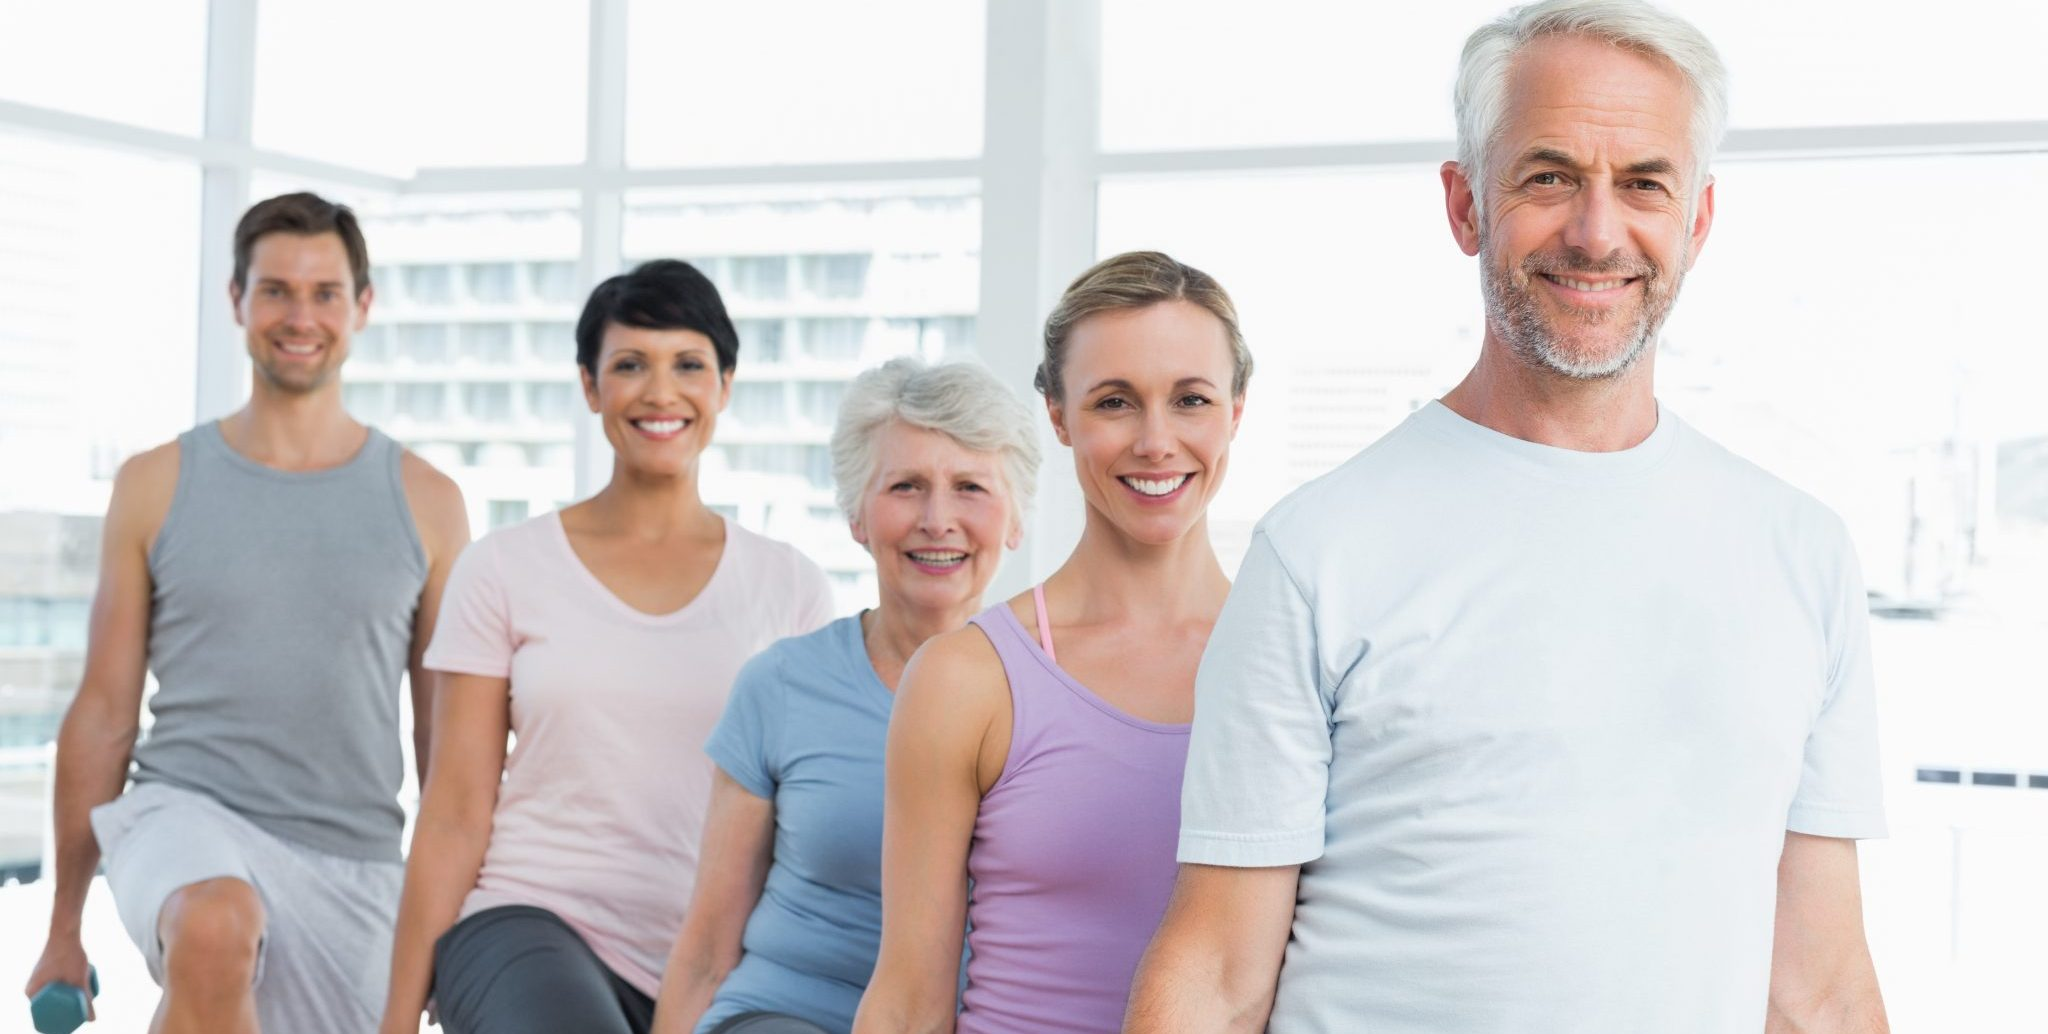 Zumba Gold provides modified dance and cardio moves for older adults.